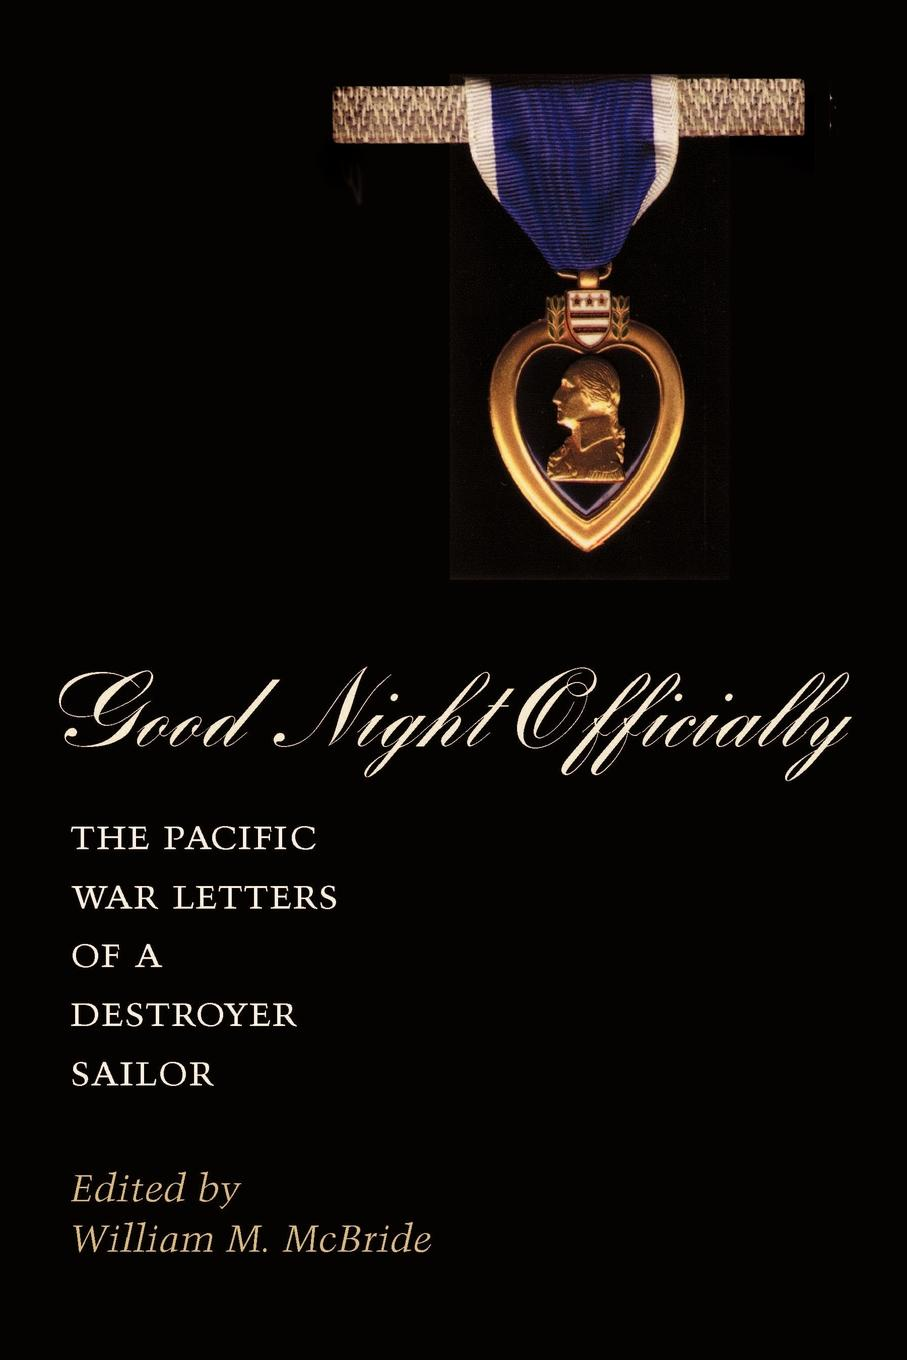 James Orvill Raines Good Night Officially. The Pacific War Letters of a Destroyer Sailor officially dead page 8